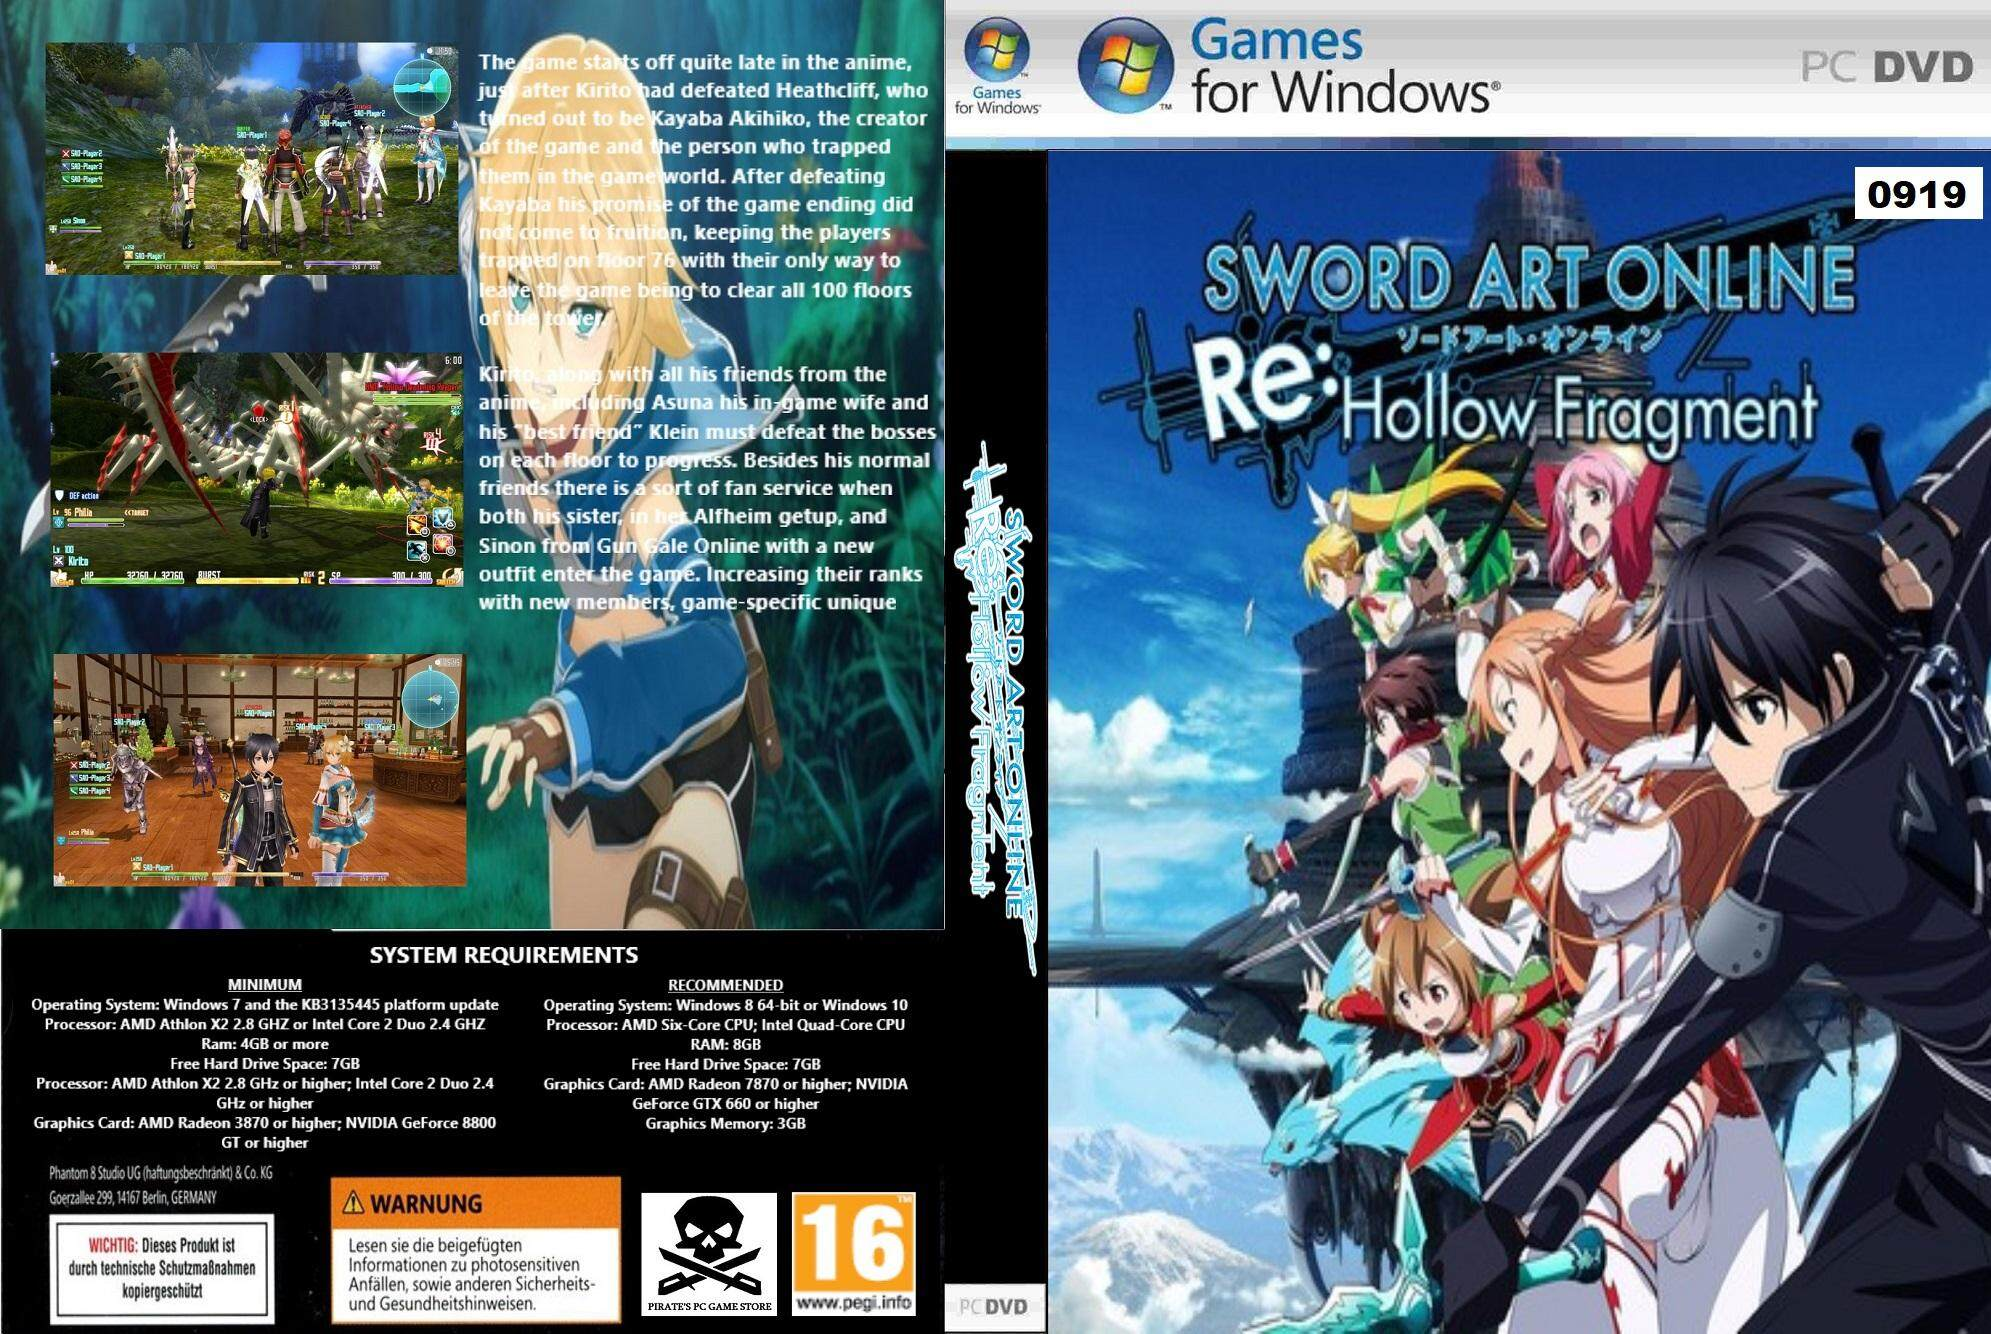 (pc) Sword Art Online Re - Hollow Fragment By Pirates Pc Game Store.